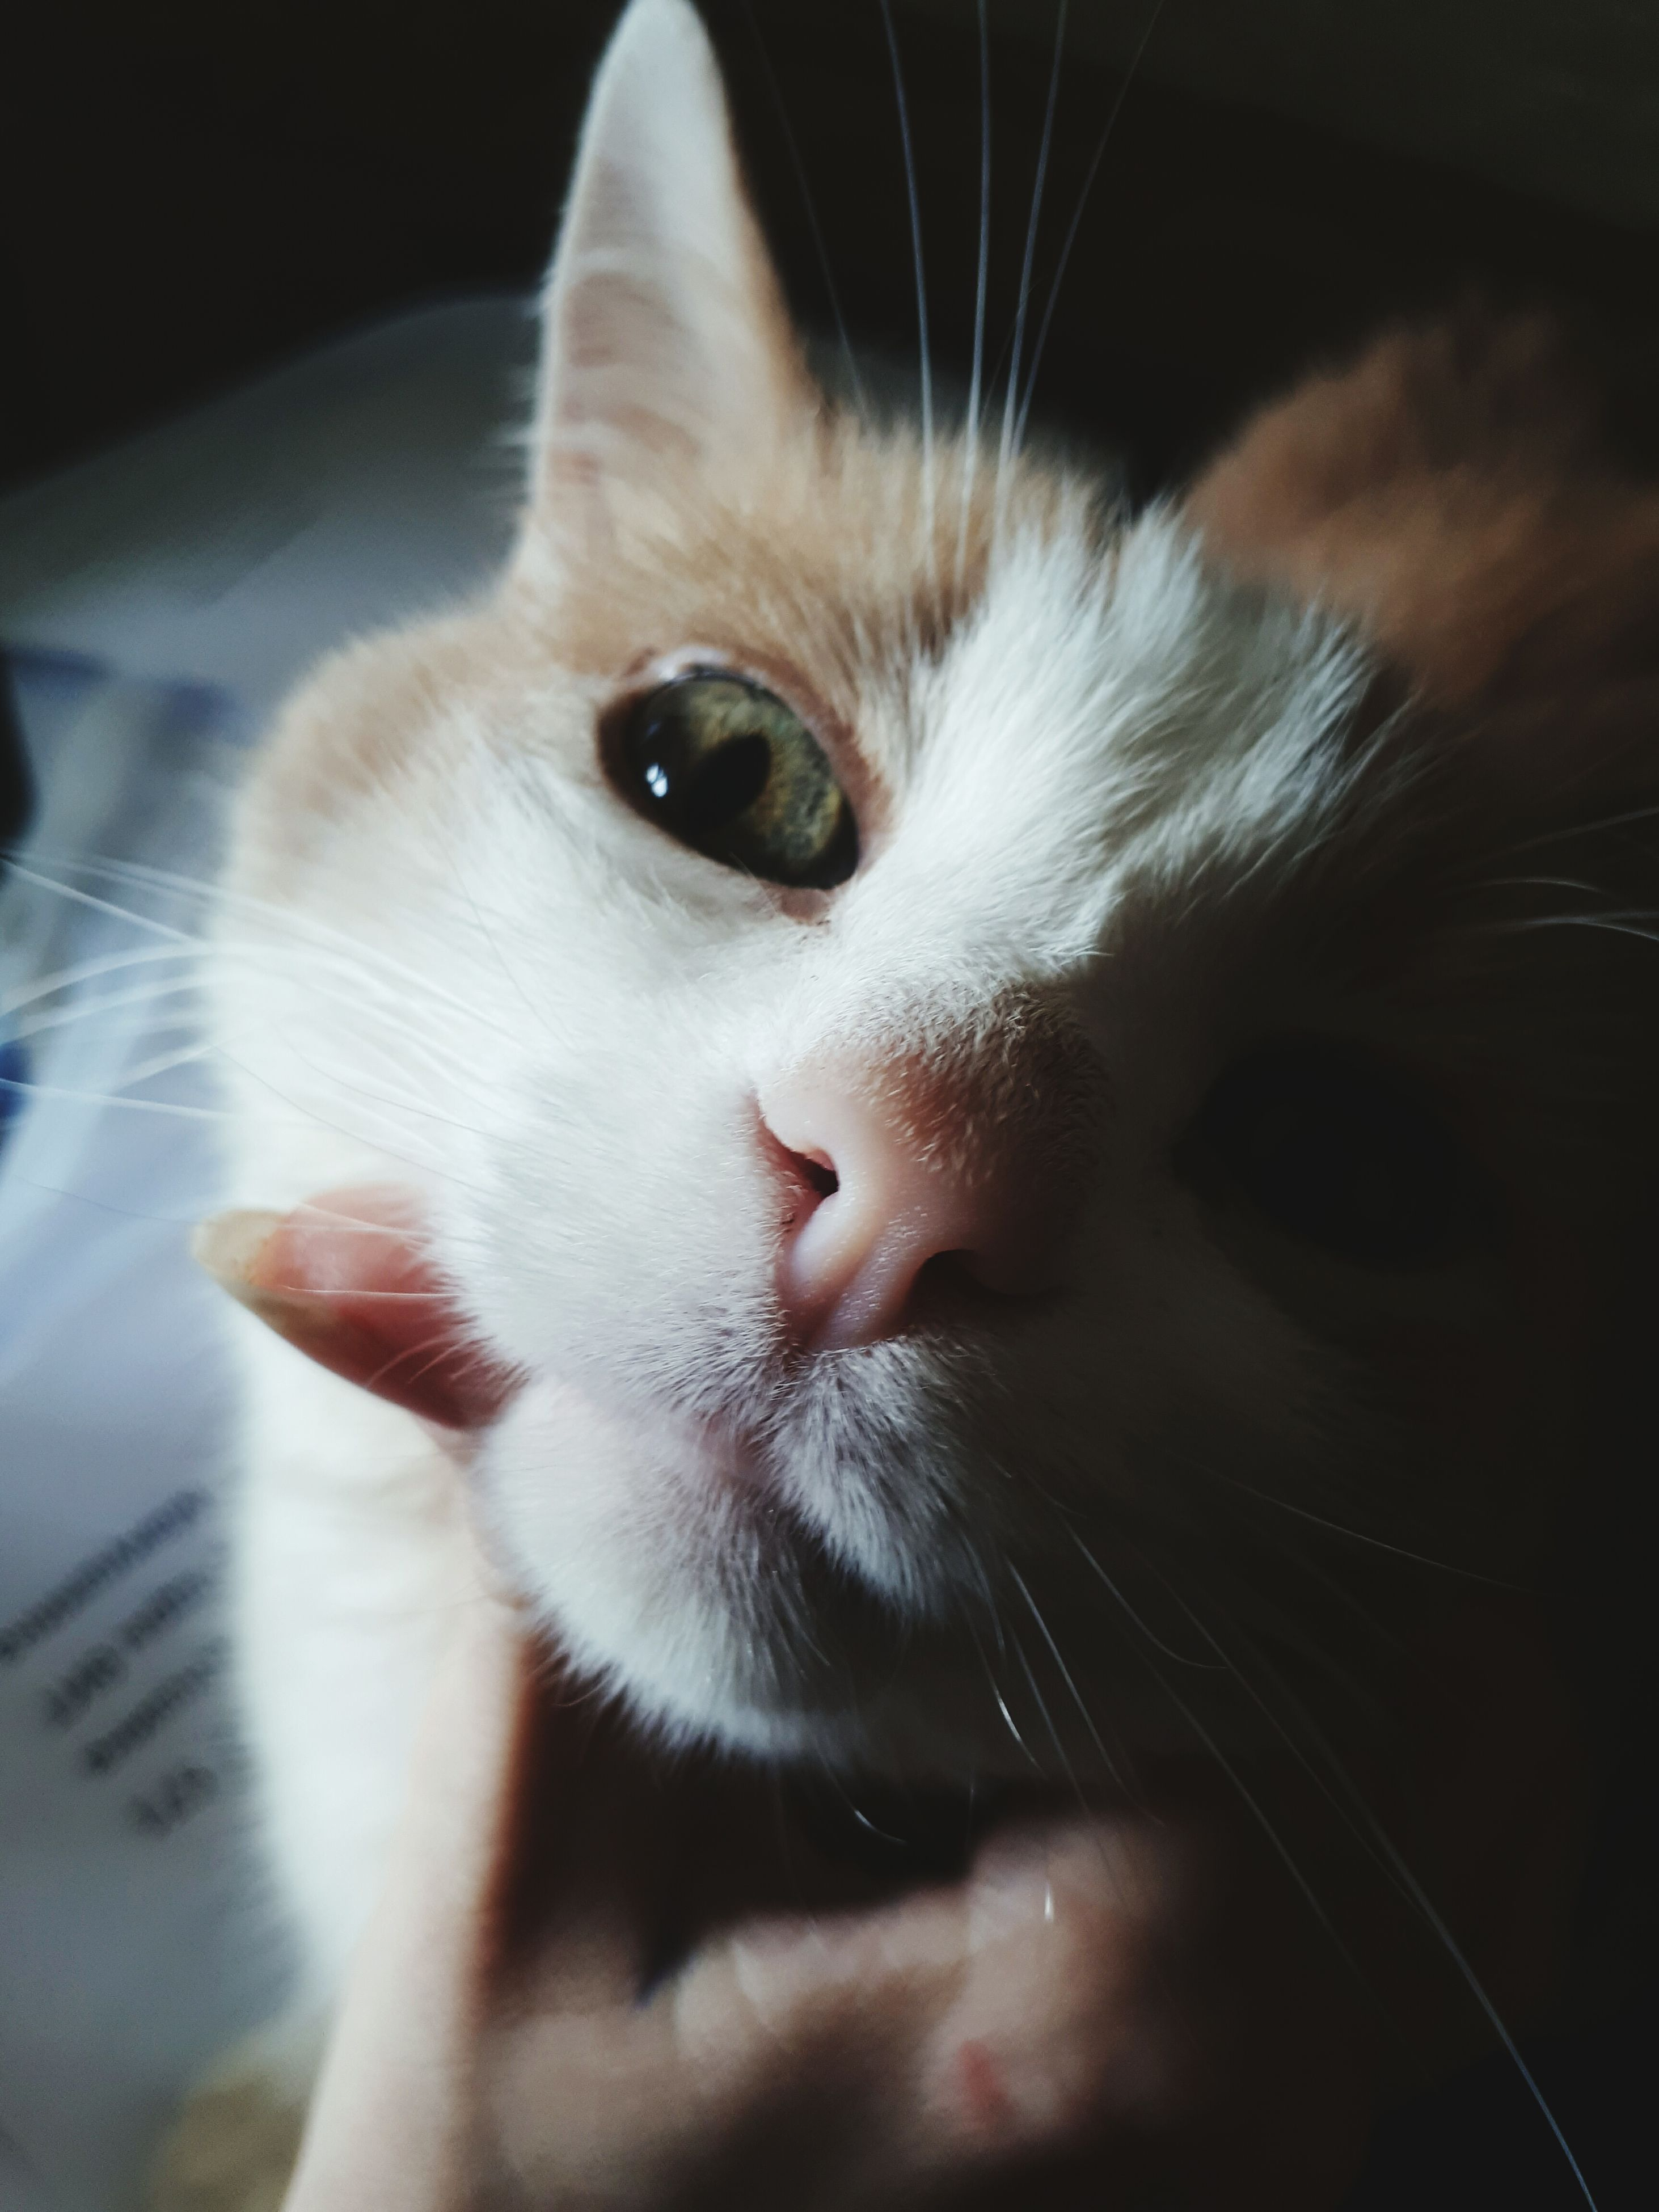 domestic cat, pets, domestic animals, one animal, feline, animal themes, mammal, whisker, indoors, close-up, portrait, no people, day